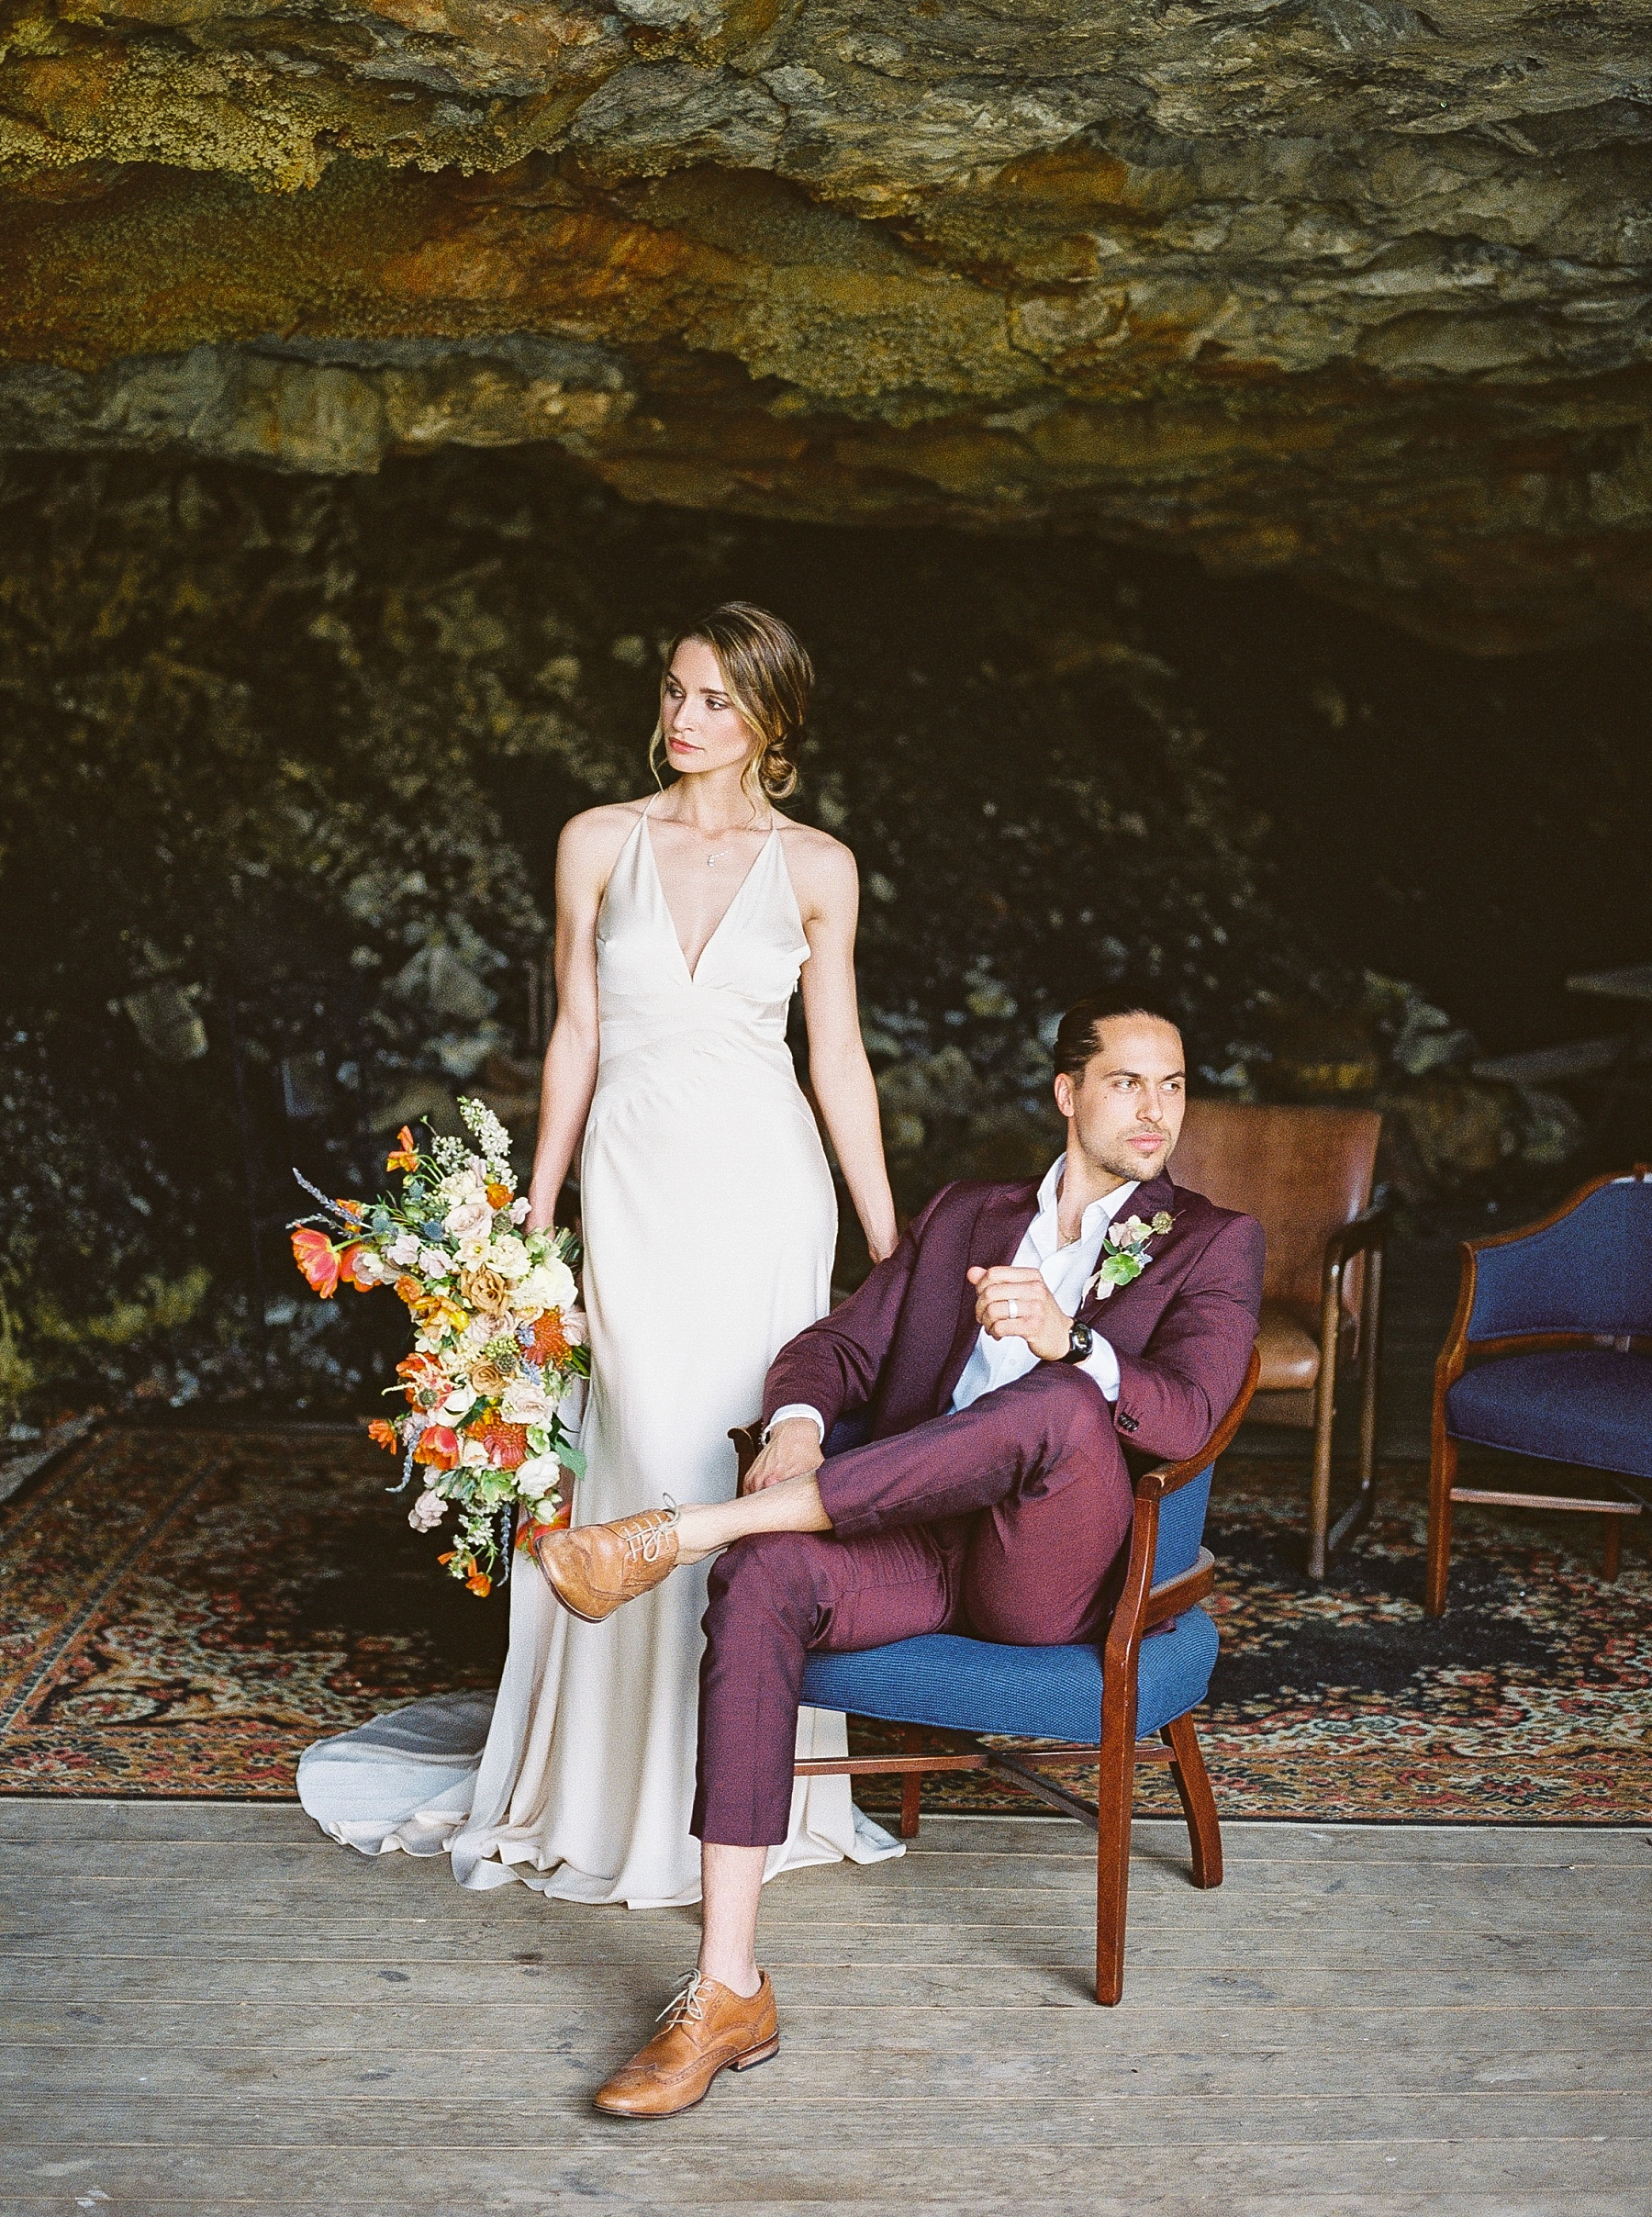 Intimate Spanish and French Inspired Destination Wedding with Lakeside Dinner Party at Dusk at Wildcliff by Kelsi Kliethermes Photography Best Missouri and Maui Wedding Photographer_0054.jpg